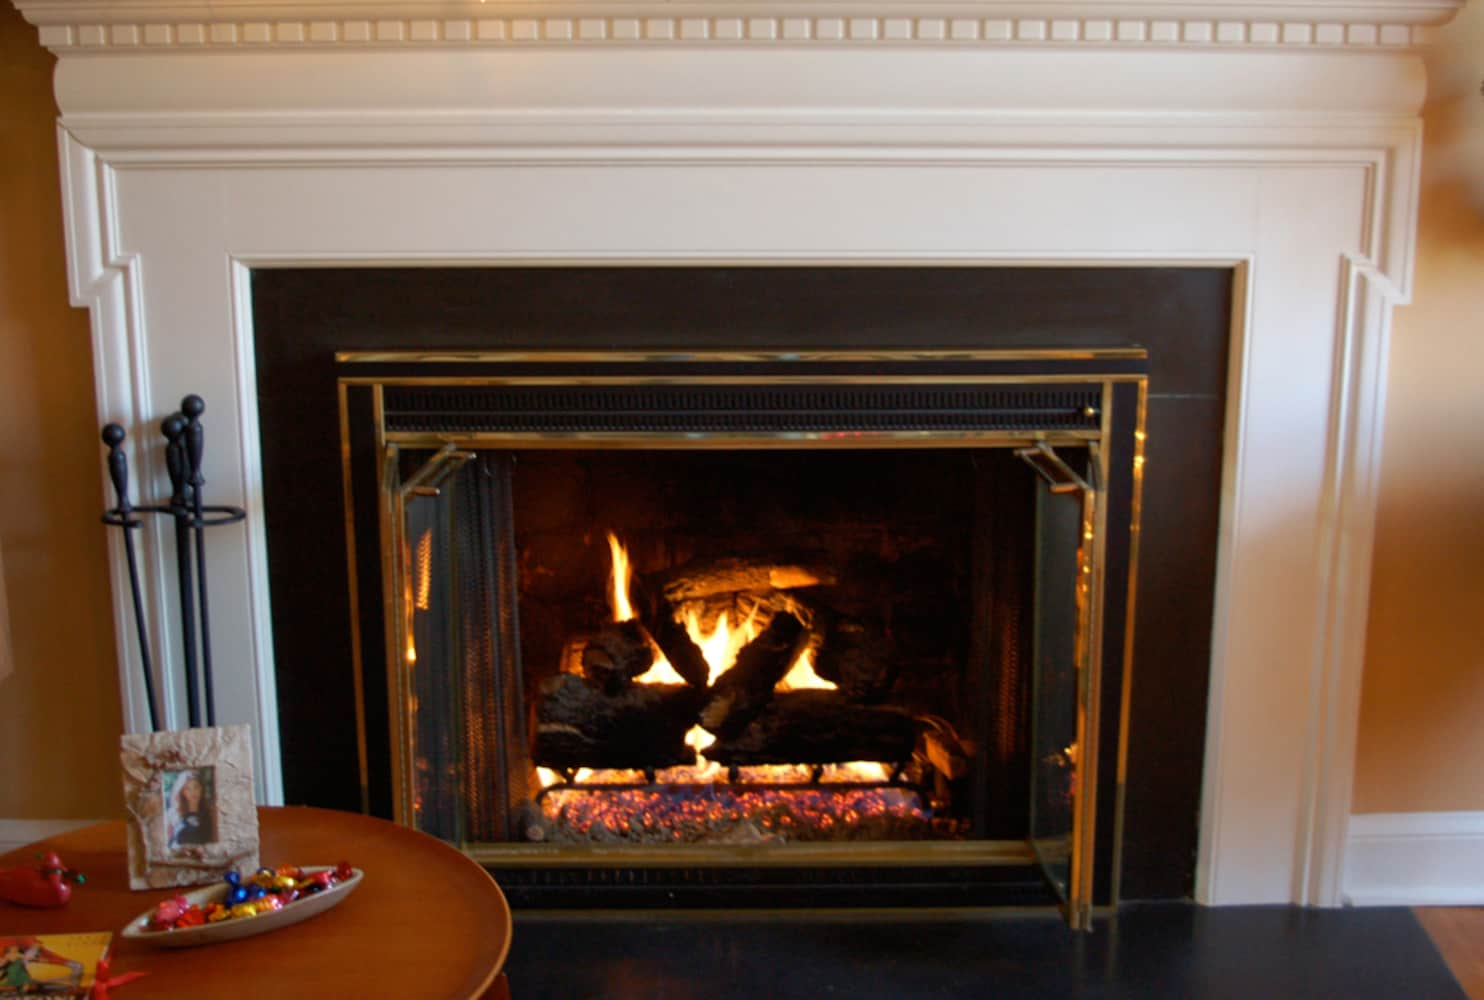 How Much Do Gas Fireplace Logs Cost How To Options For Converting A Fireplace To Natural Gas The